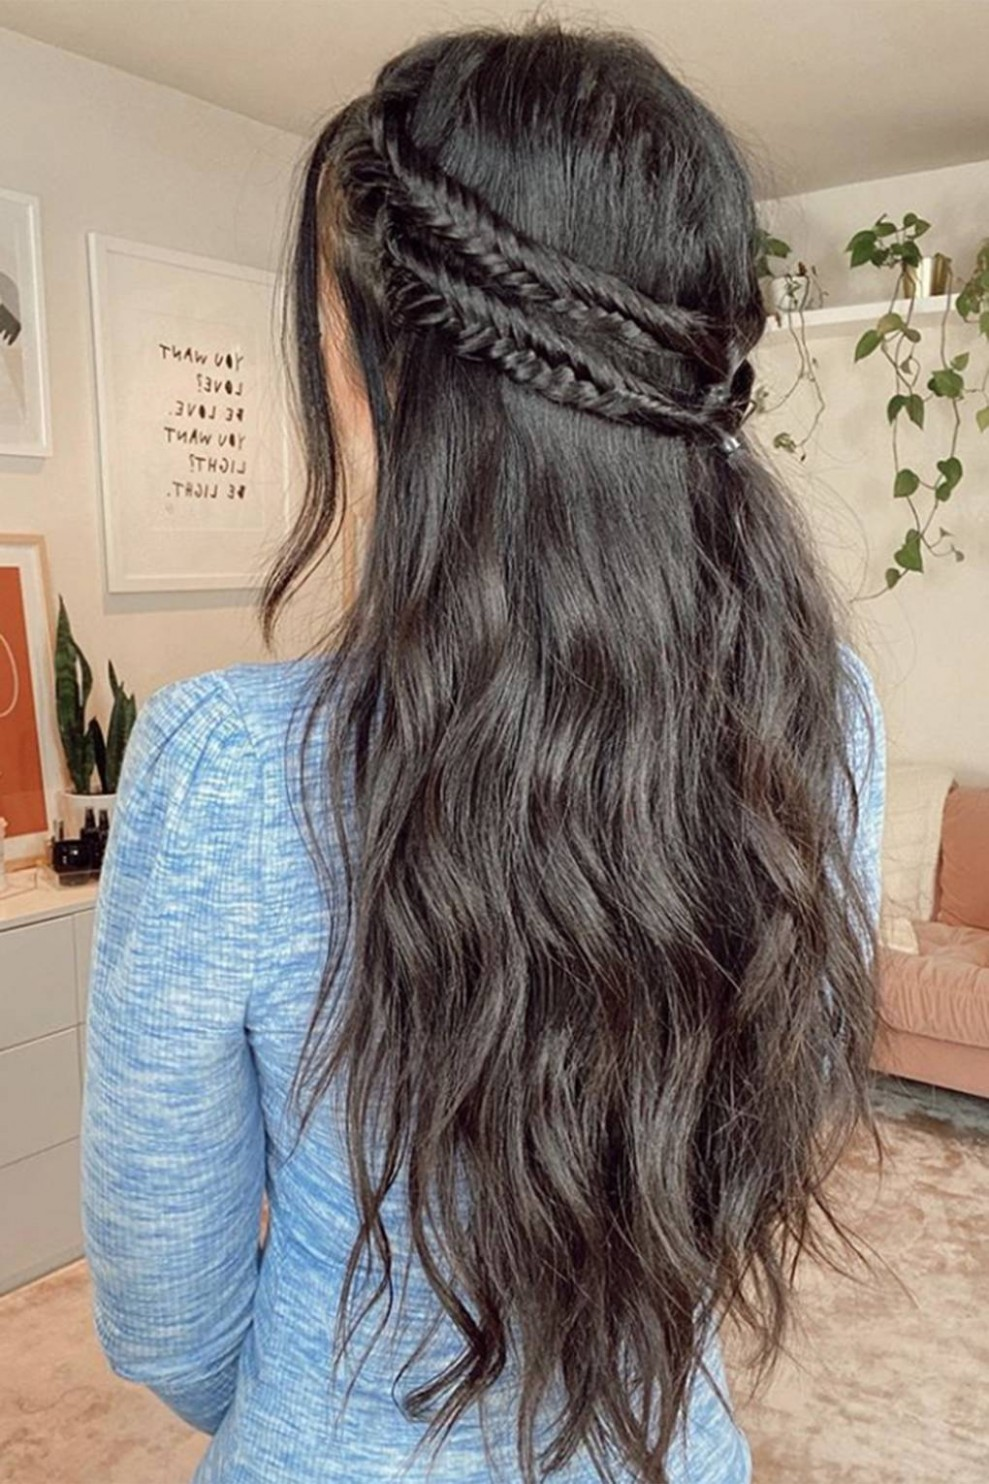 Hairstyles For Long Hair: Long Hair Trends, Ideas & Tips 10